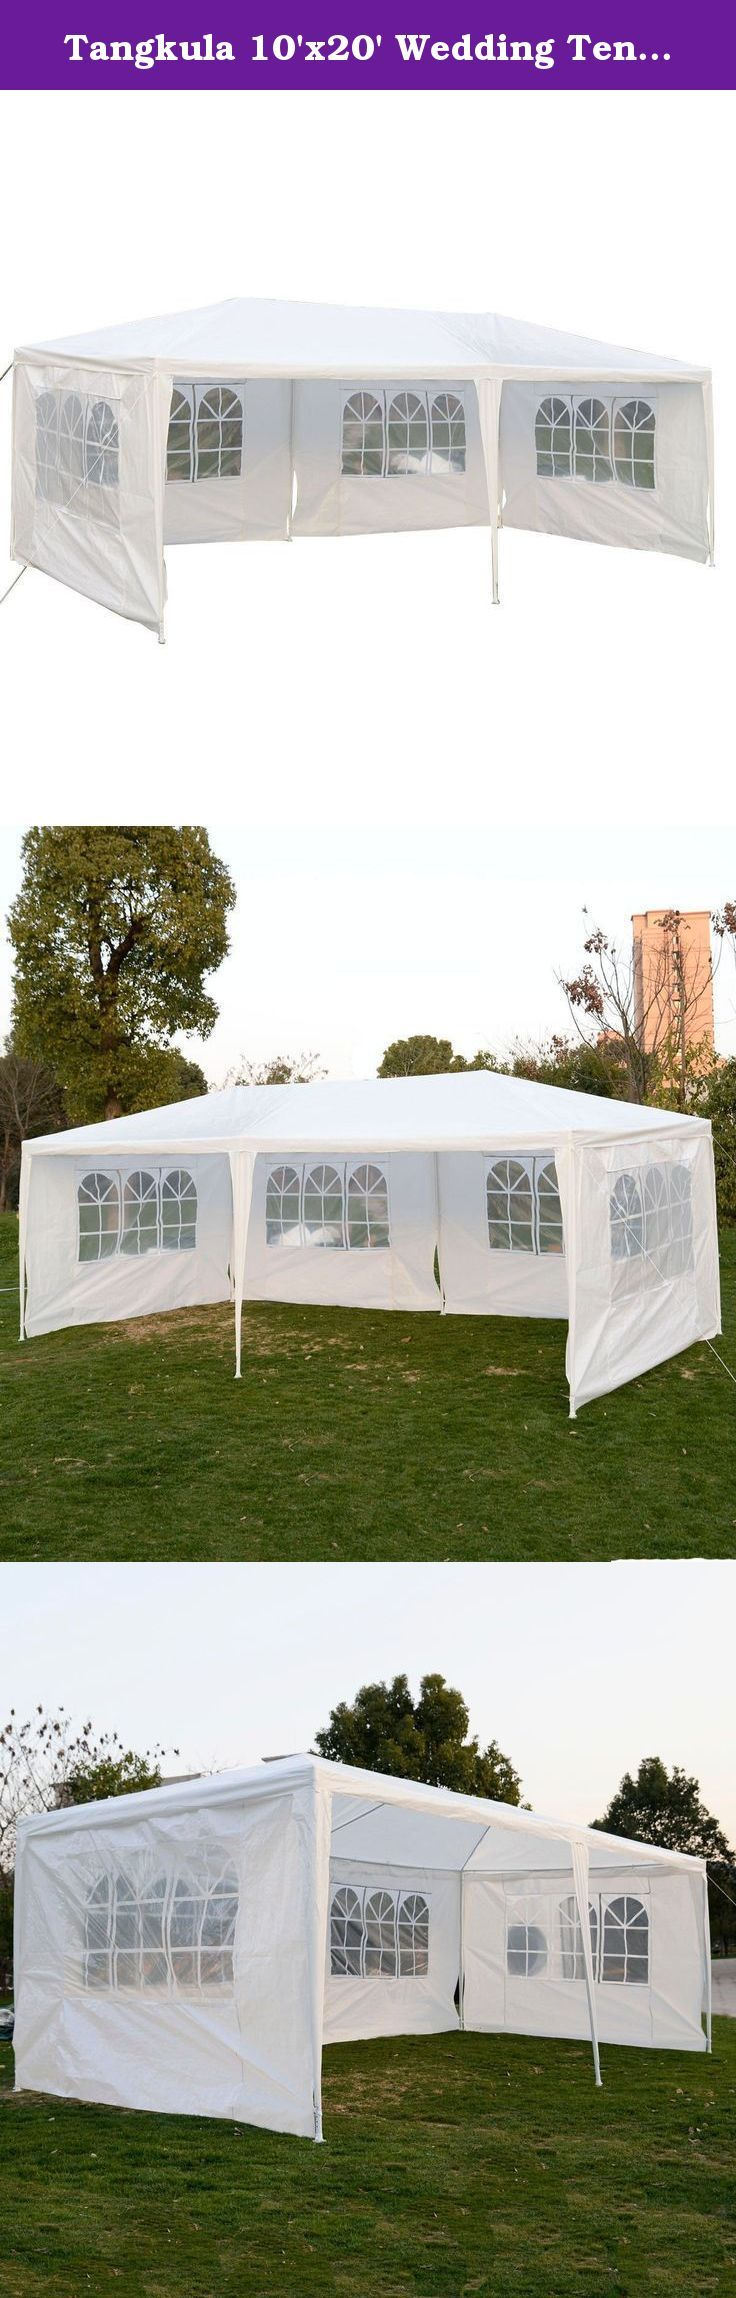 Tangkula 10'x20' Wedding Tent 4 Walls with Window BBQ Party Outdoor Canopy Tent White. Material: Polyethylene. Frame: White coated steel/PE joint fittings. Sidewalls: 4 Walls with Windows, White. Size: 10'x20'. Easy to assemble.